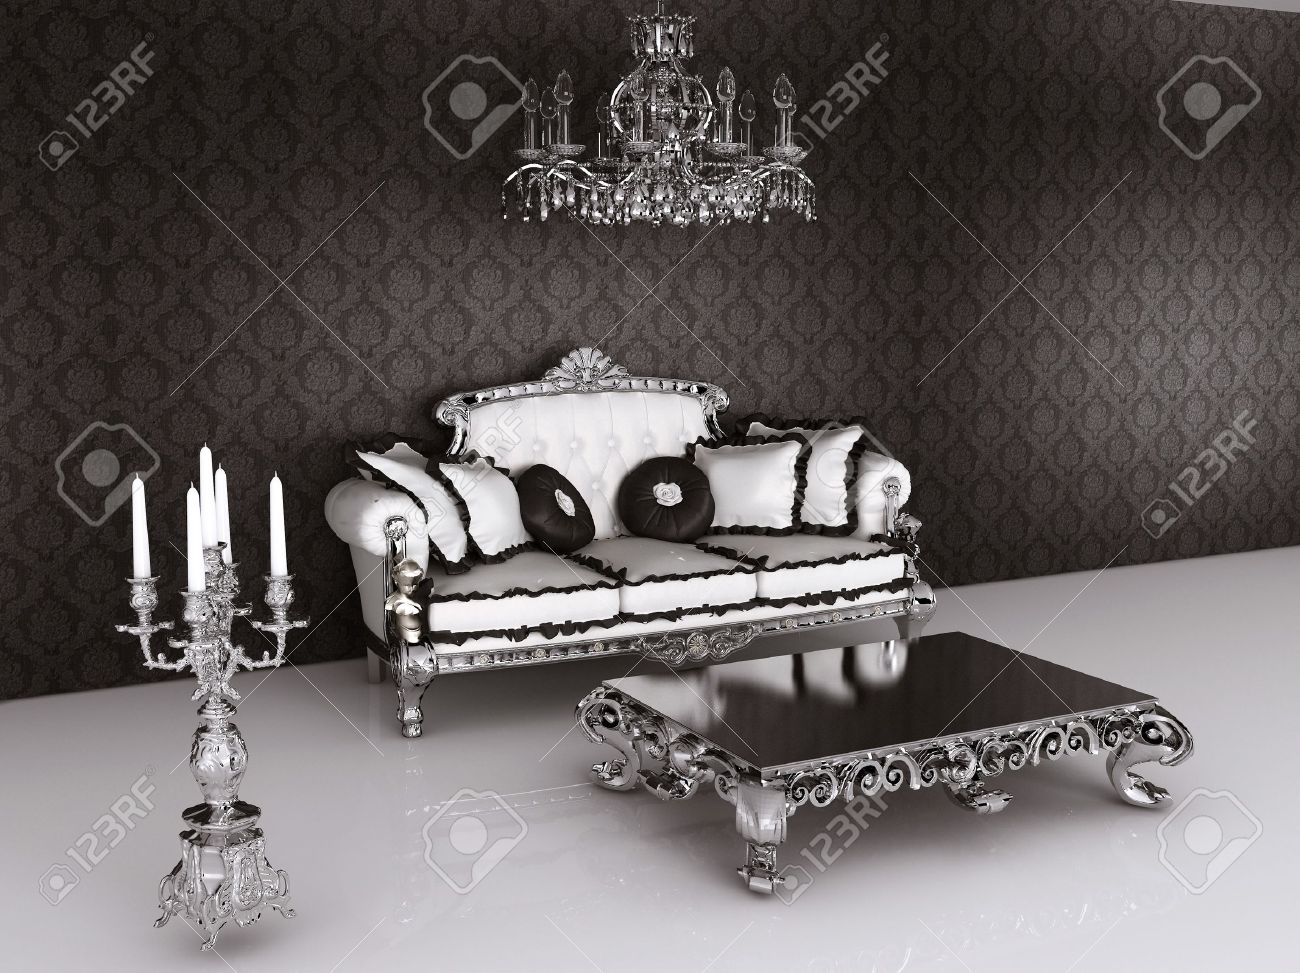 Royal Furniture In Baroque Interior. Sofa With Pillows And Table With  Candelabrum Stock Photo